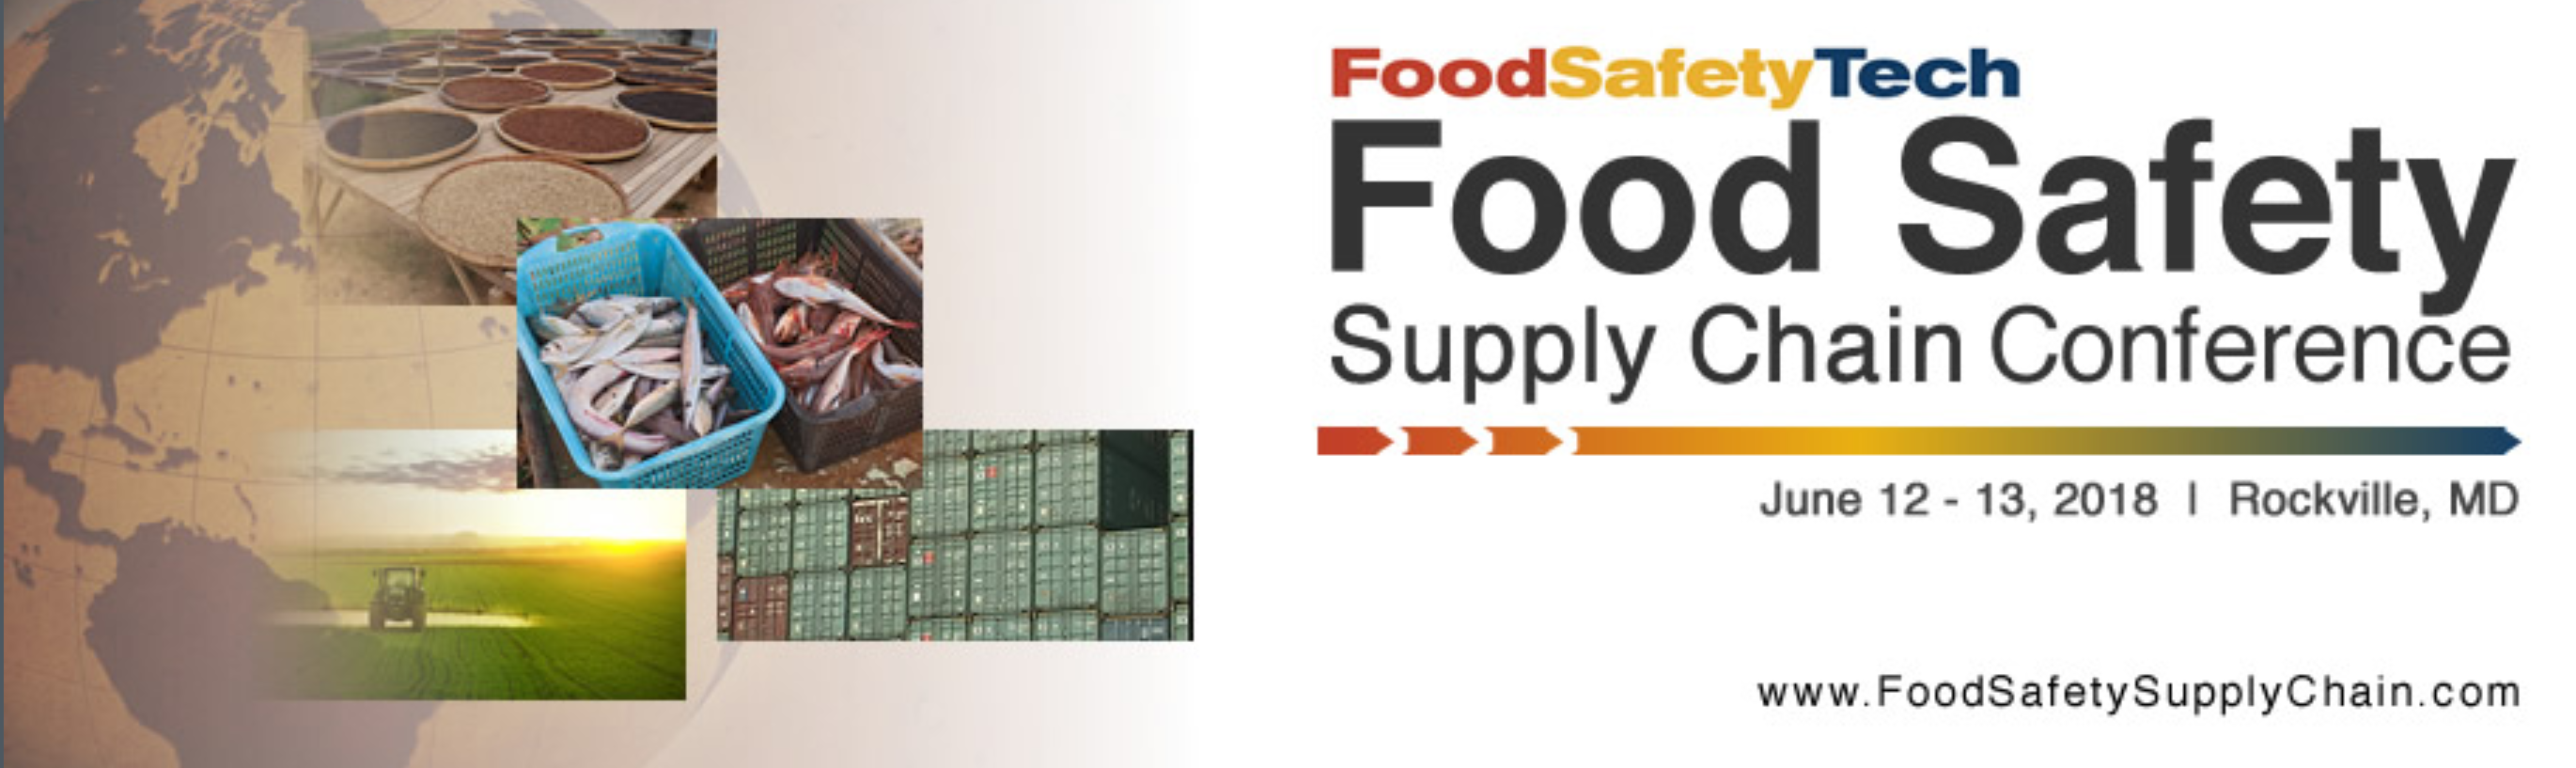 food_safety_tech